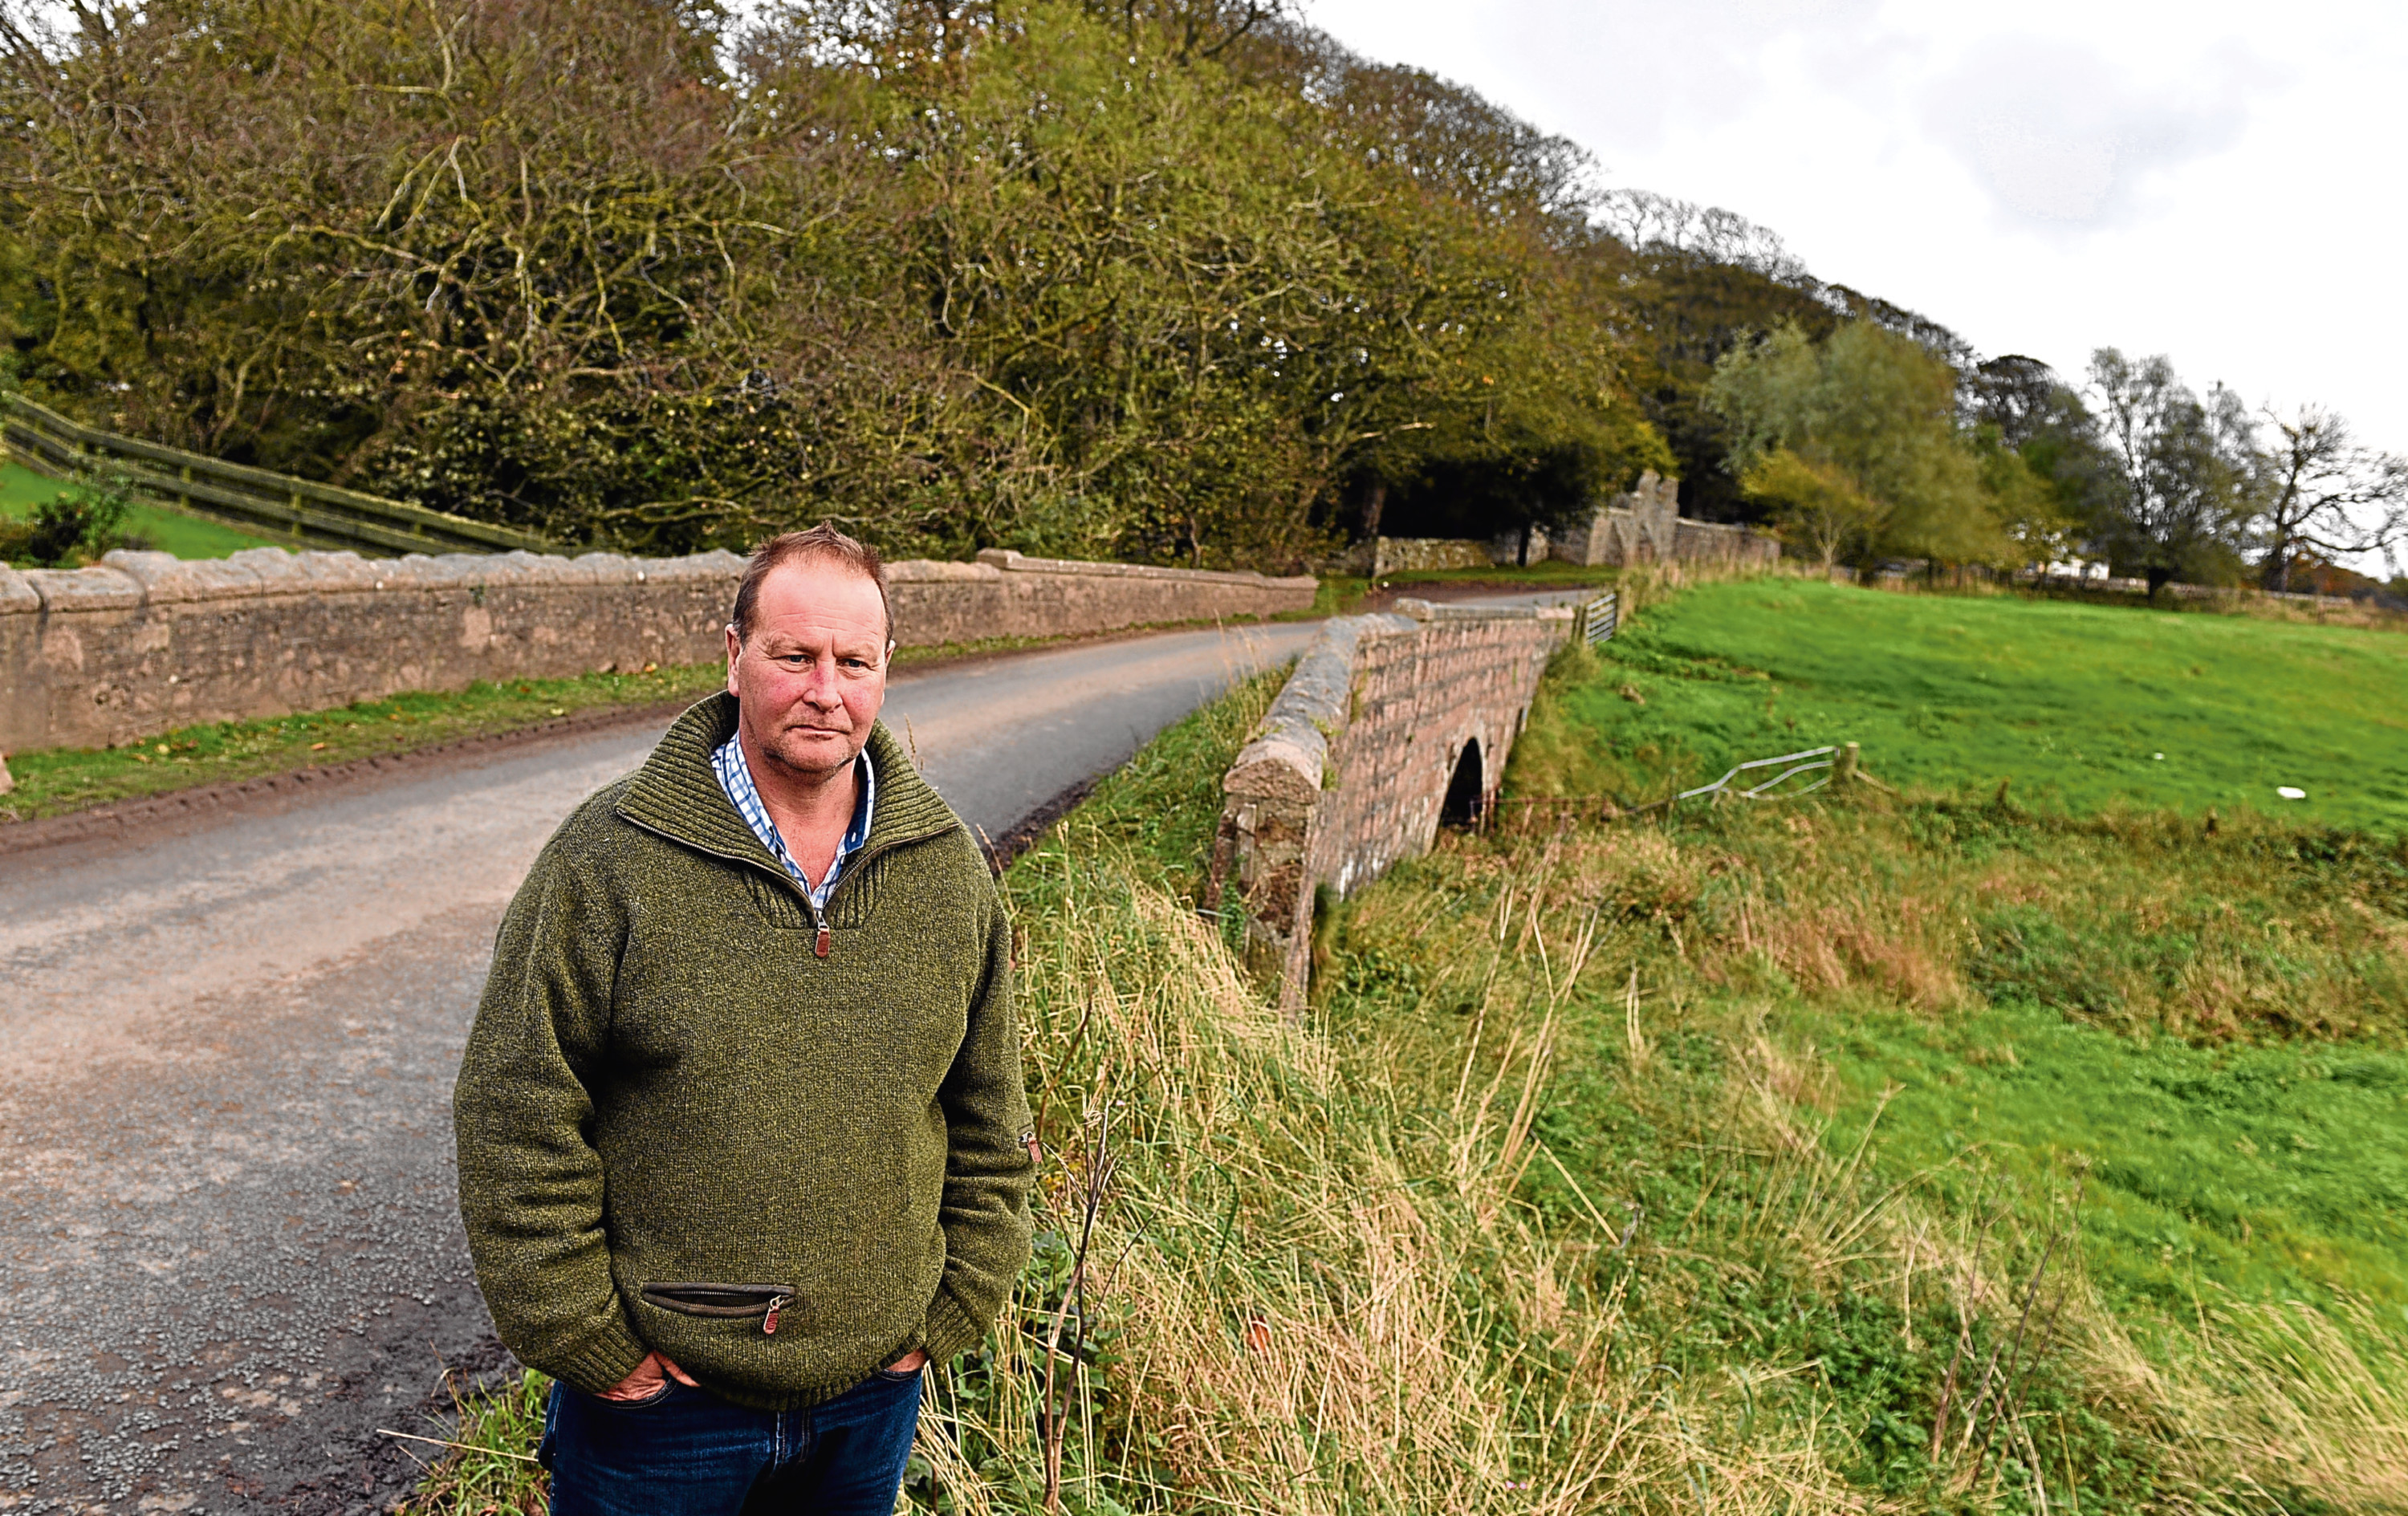 Local farmer James Duthie is concerned about the possible damage to Piergersie Bridge near Foveran Church which is on the diversion route to the village, due to the AWPR work. Picture by Kami Thomson